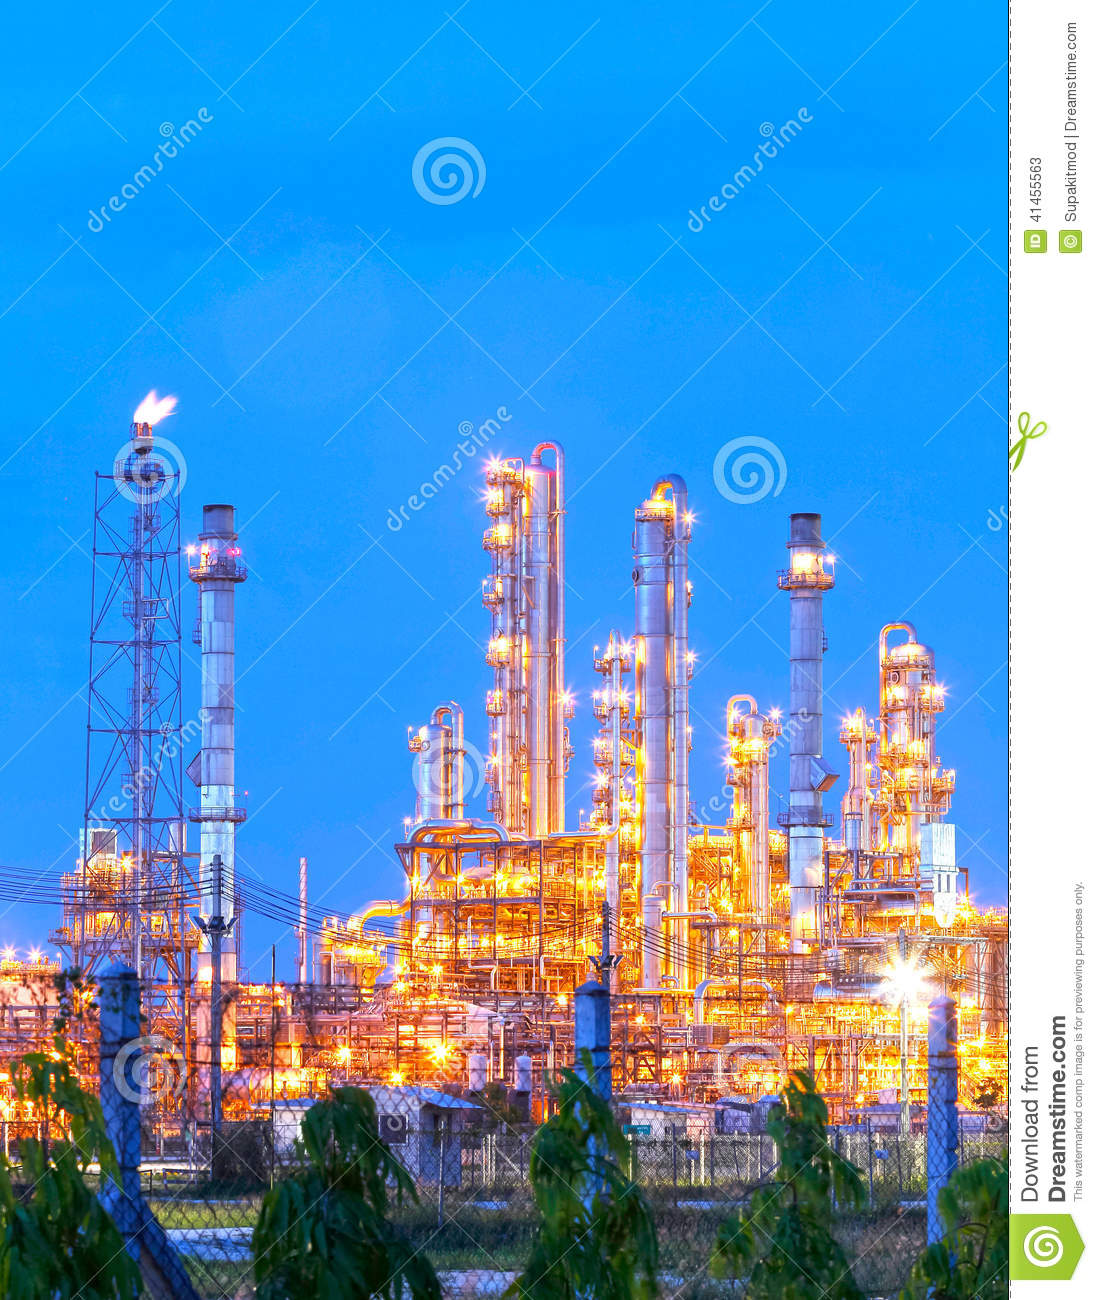 Night Scene Of Refining Plant ,Processed Using HDR Stock